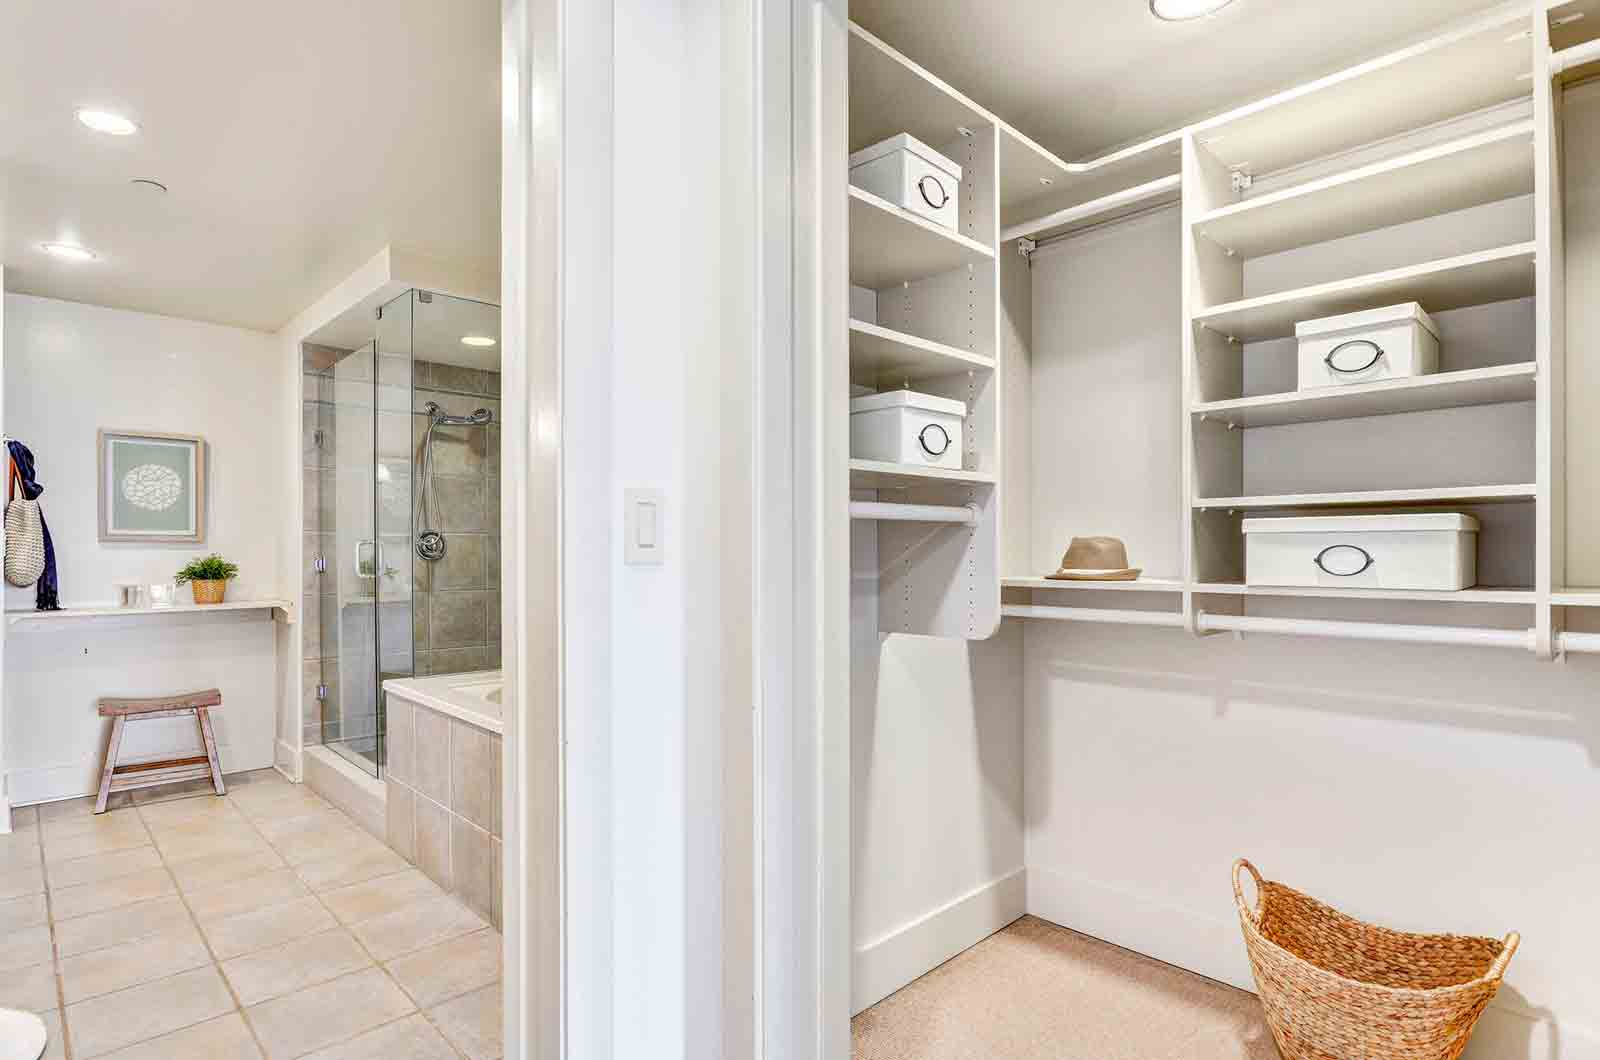 Bathroom-Photo-_-Orange-County-Luxury-Real-Estate-Photography